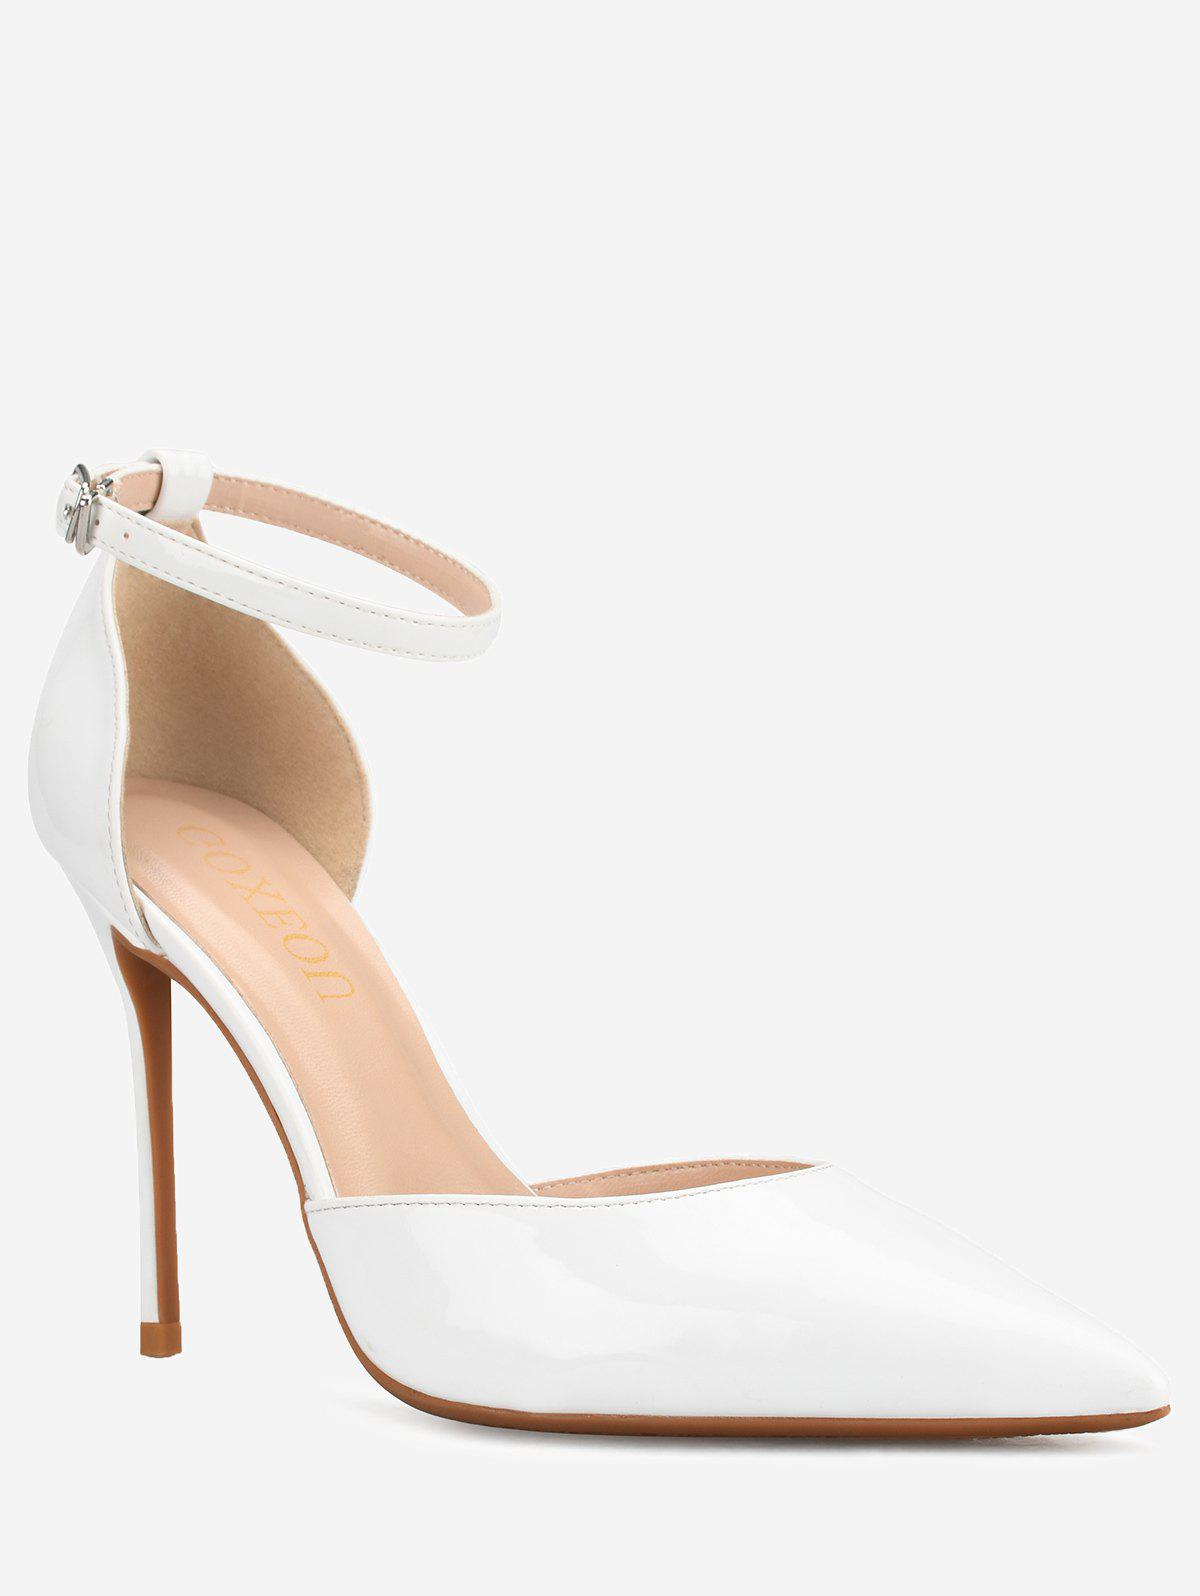 Online GOXEOU Pointed Toe Stiletto Heel Prom Pumps